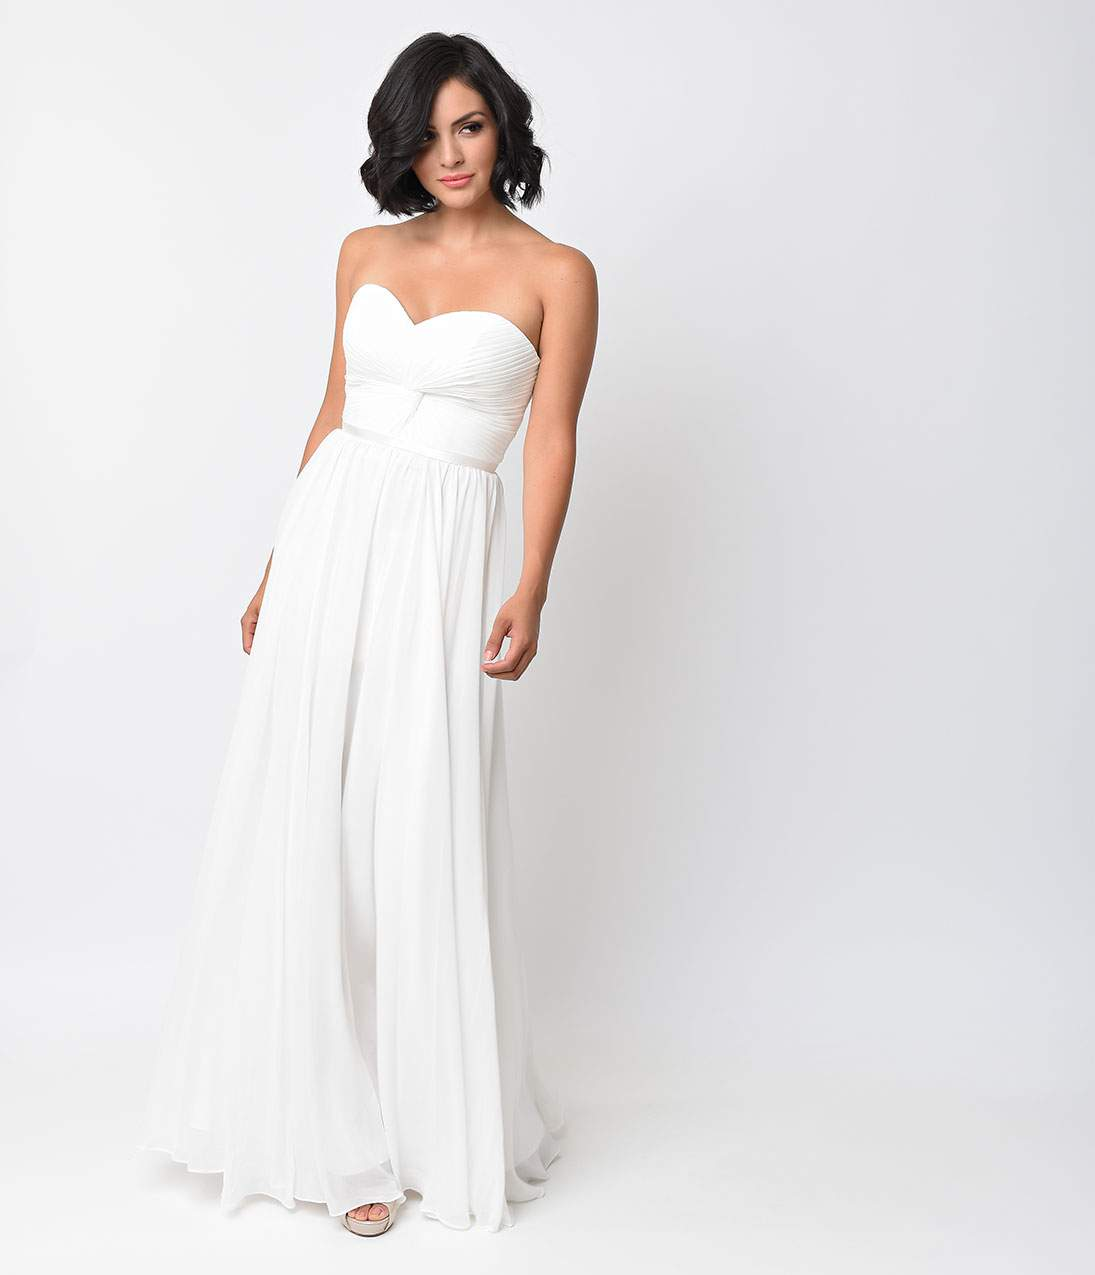 Vintage Inspired Wedding Dress | Vintage Style Wedding Dresses Off White Chiffon Strapless Sweetheart Corset Long Gown $96.00 AT vintagedancer.com